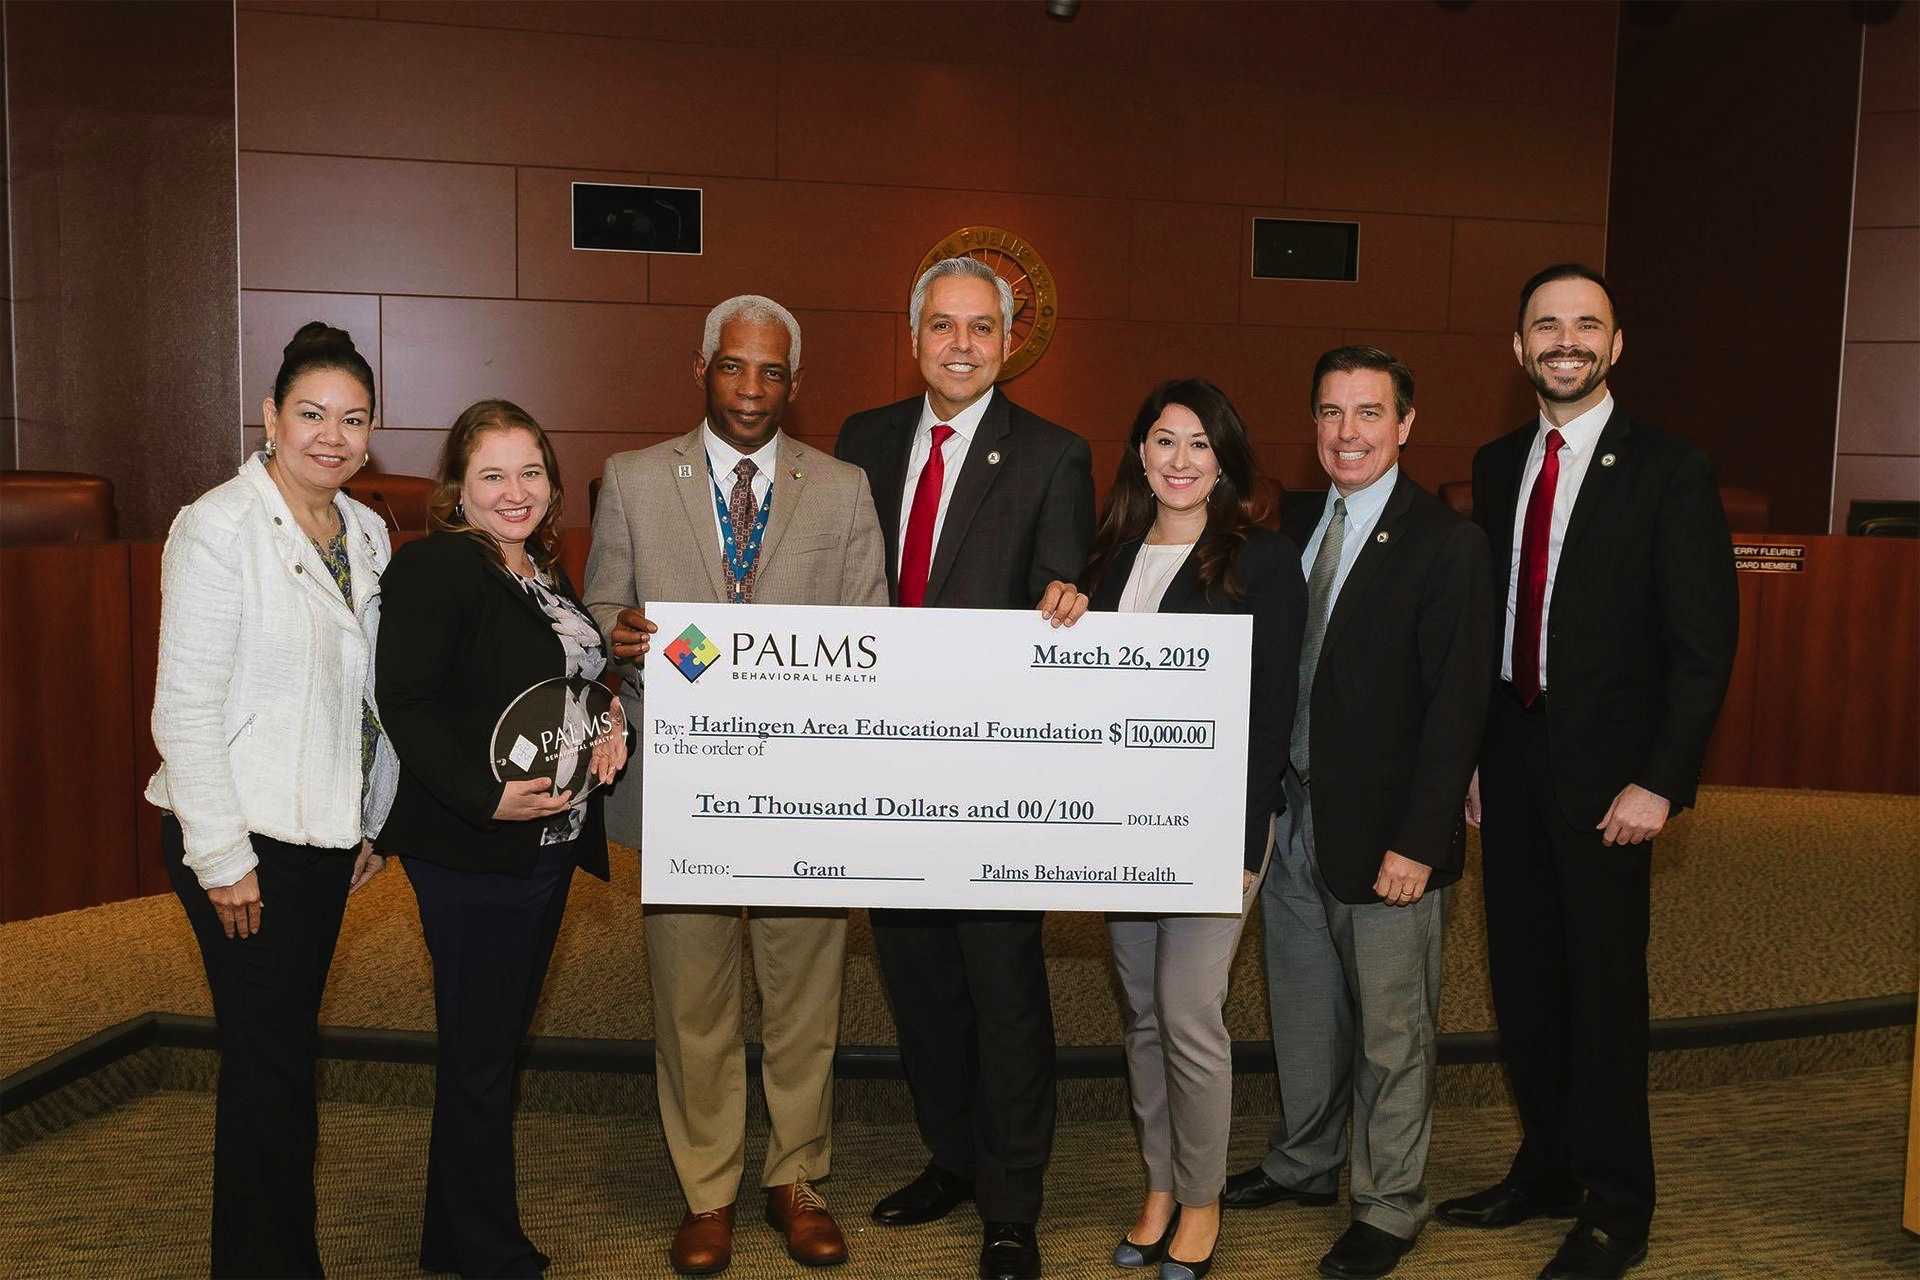 Palms Behavioral Health donates $10K to Harlingen Area Educational Foundation